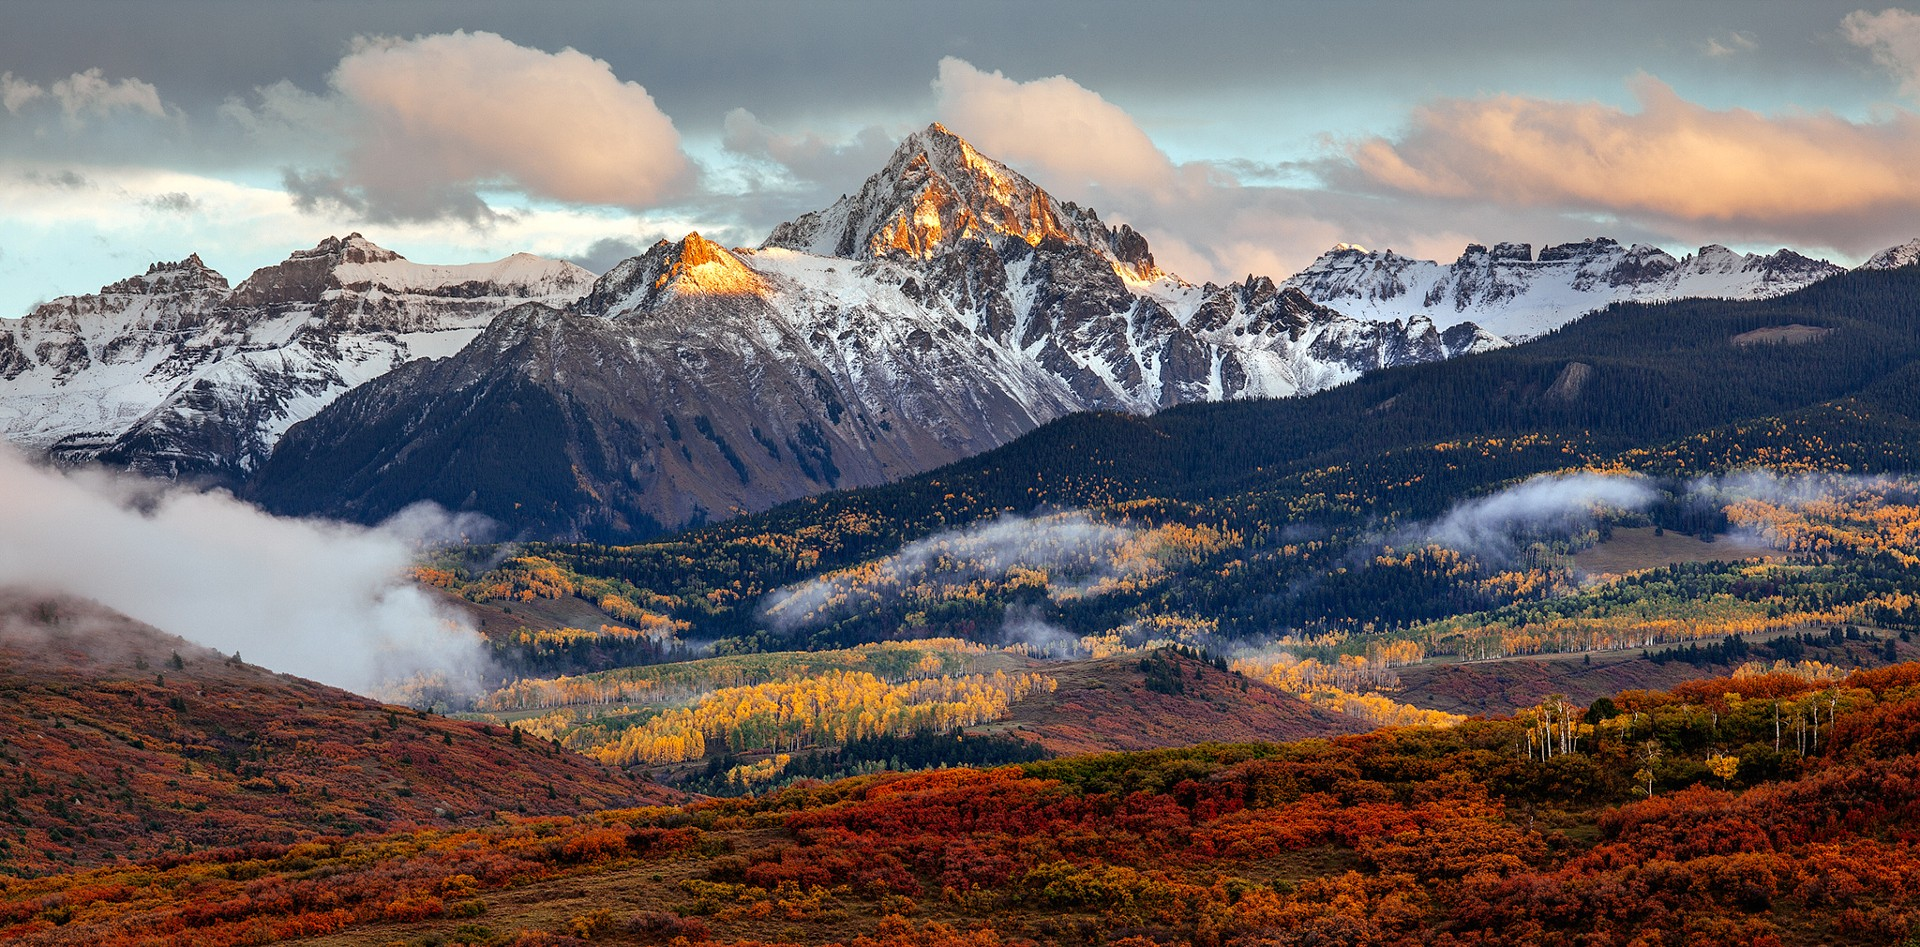 2560x1080 Fall Mountain Wallpaper Colorado Mountains Hd Nature 4k Wallpapers Images